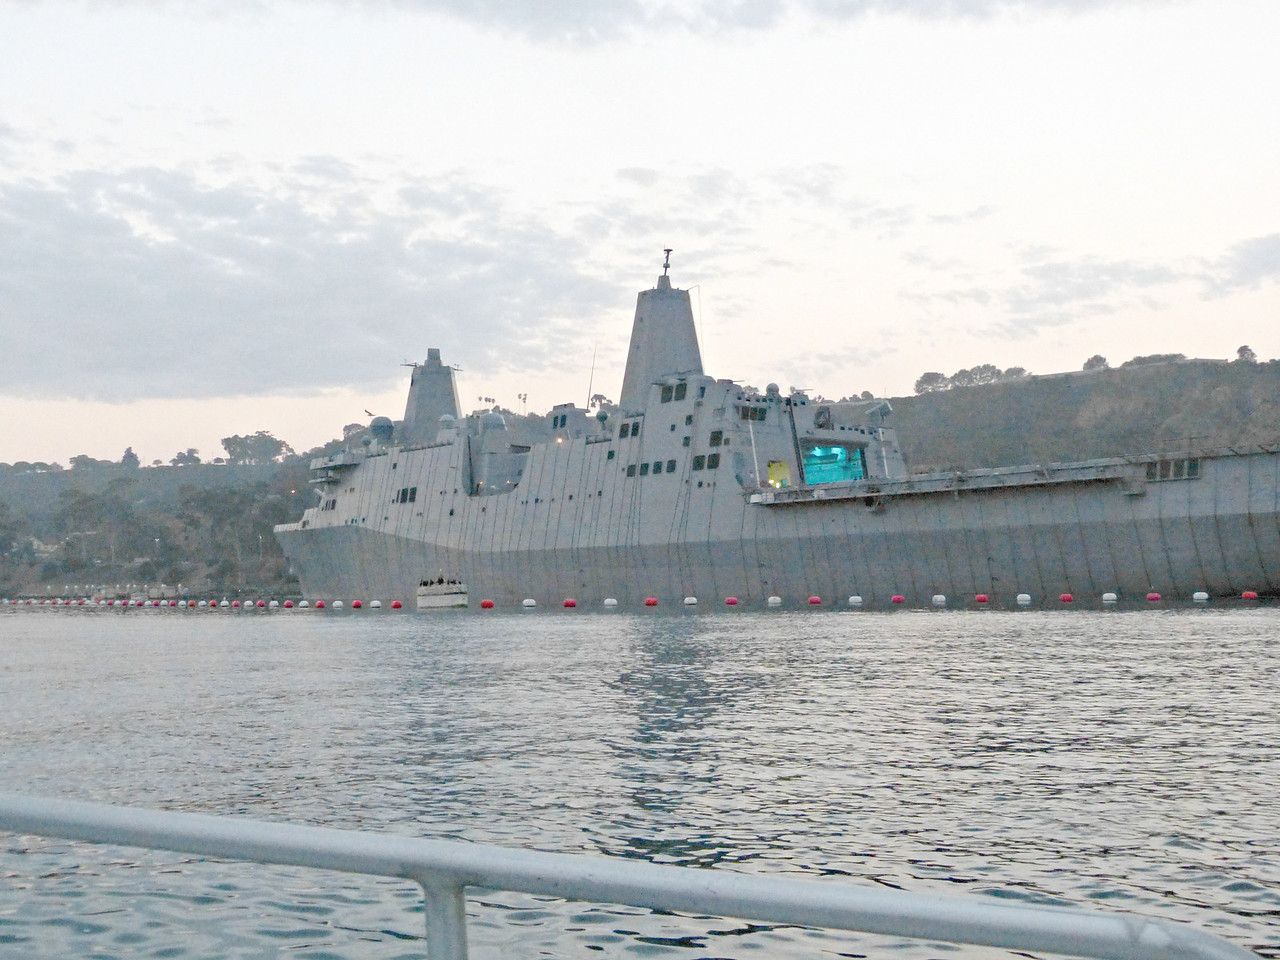 This, my dear Fan, is the USS San Diego!  Yes, indeed.  A San Antonio Class amphibious transport dock, she is home-based right here in her name-sake city, and is also known as LPD-22.<br /> <br /> The class's increased vehicle and substantial cargo carrying capacity will make it a key element of 21st century Amphibious Ready Groups, Expeditionary Strike Groups, or Joint task forces. The ships of the new class integrate the latest in shipbuilding and warfighting technologies to support current and future Marine Corps aircraft, and both air cushion or conventional landing craft.<br /> <br /> The San Antonios are designed to be the most survivable amphibious ships ever put to sea  [what contractor would ever advertise their ship design could be easily sunk?]. The design incorporates state-of-the-art self-defense capabilities; and includes facilities for Command and Control, Communications, Computers, and Intelligence (C4I); and reduced radar cross-section signature technologies. Reduced operational costs and an improved capability to incorporate technological advances over its 40-year service life are also essential design objectives.  [we'll see how that pans out]